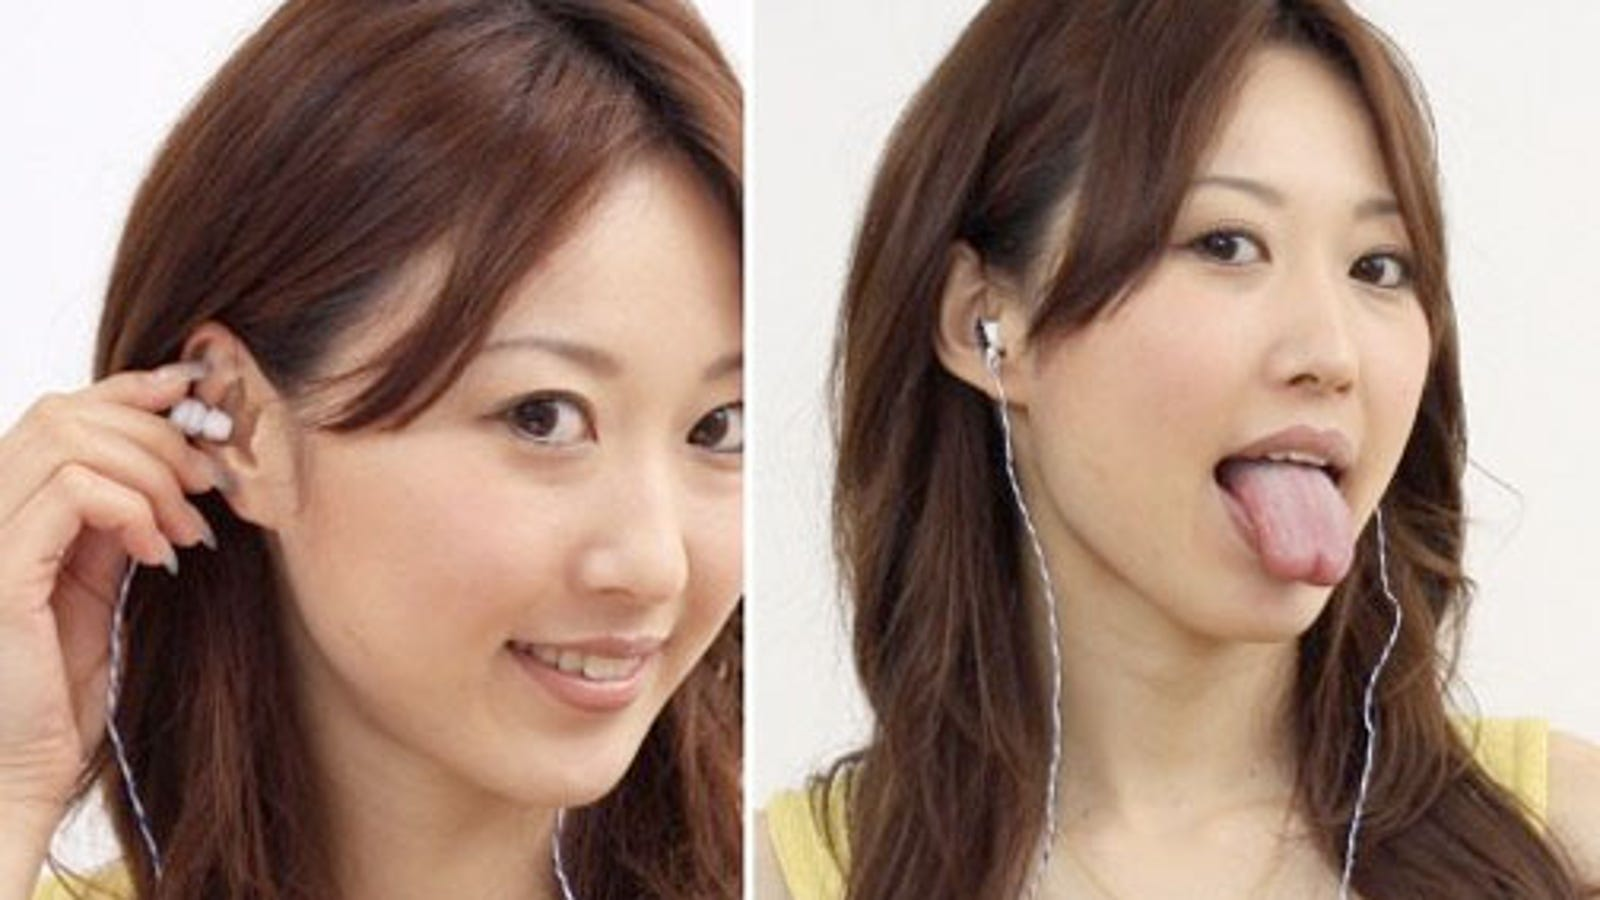 earbud iphone adapter - 'Ear Switch' Earbuds Control Gadgets With Nothing But Your Ridiculous Facial Expressions